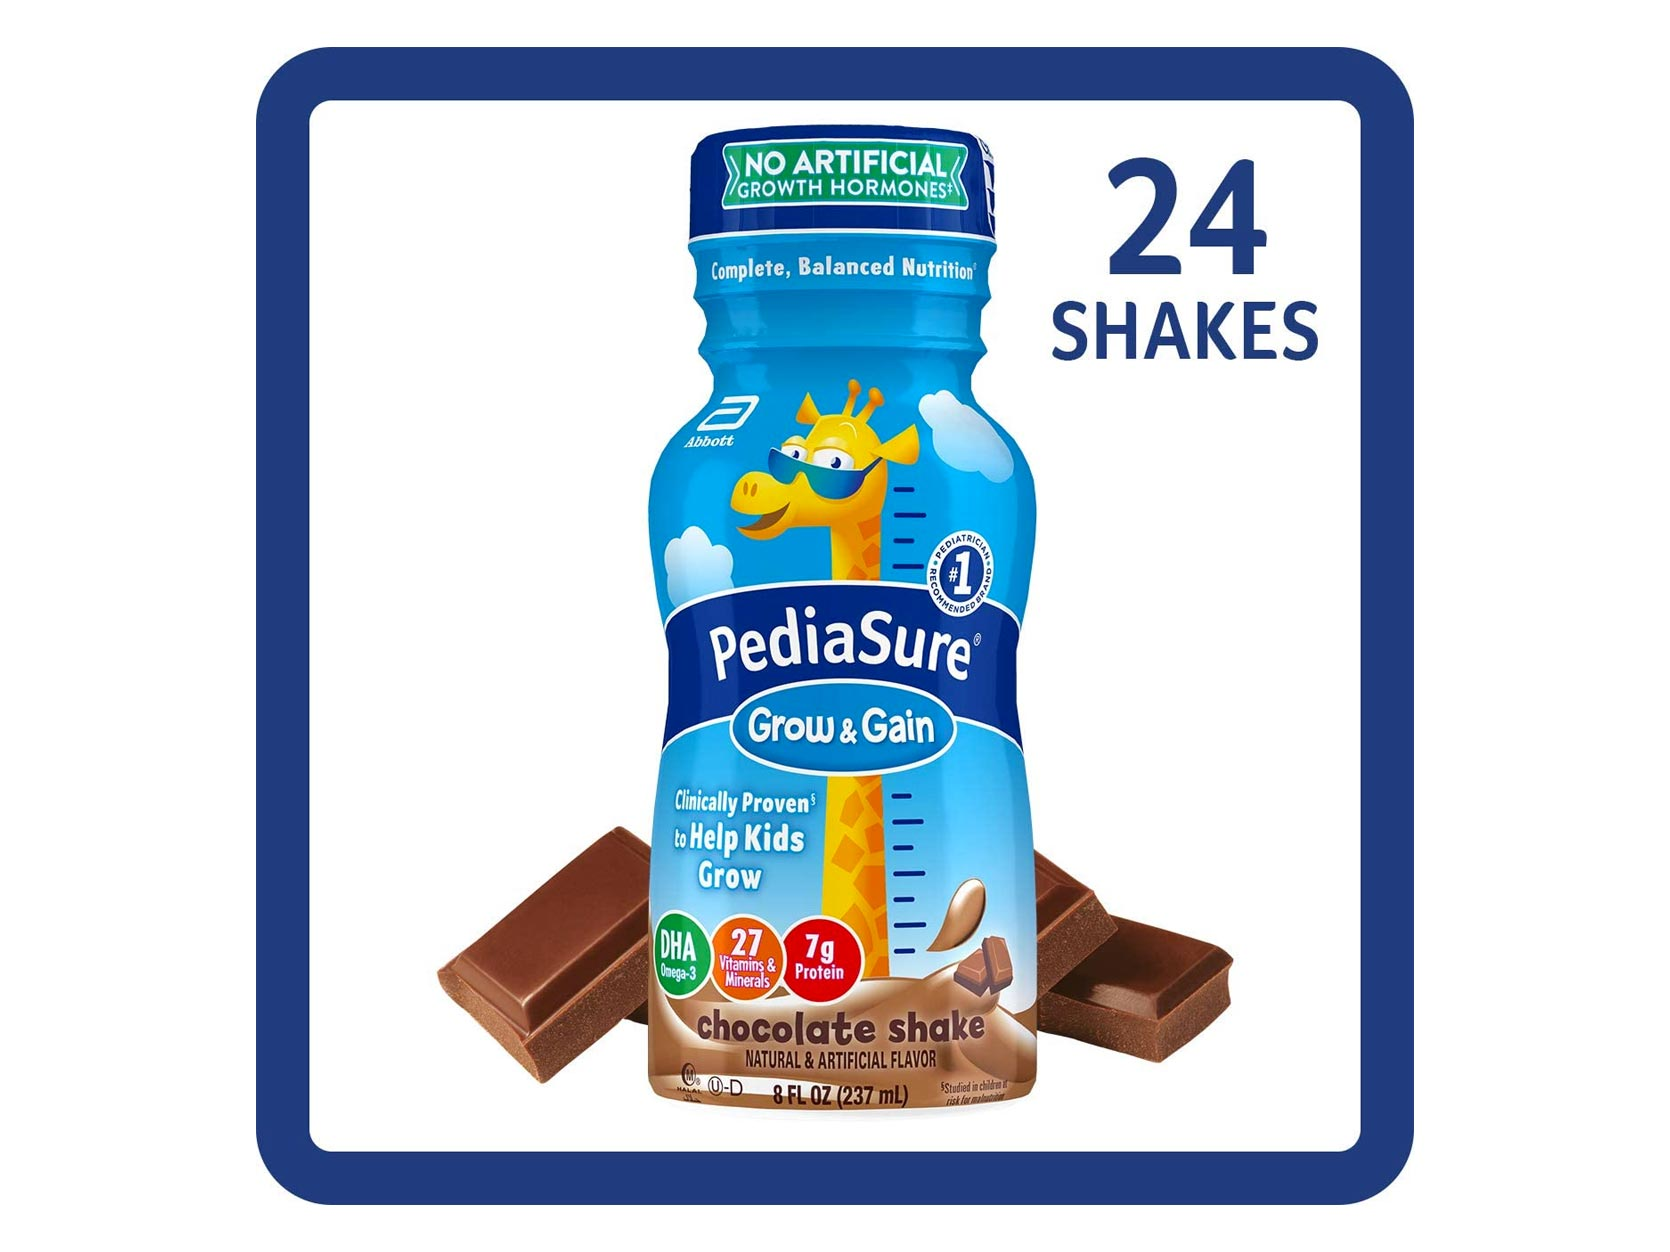 PediaSure Grow & Gain Kids' Nutritional Shake, with Protein, DHA, and Vitamins & Minerals